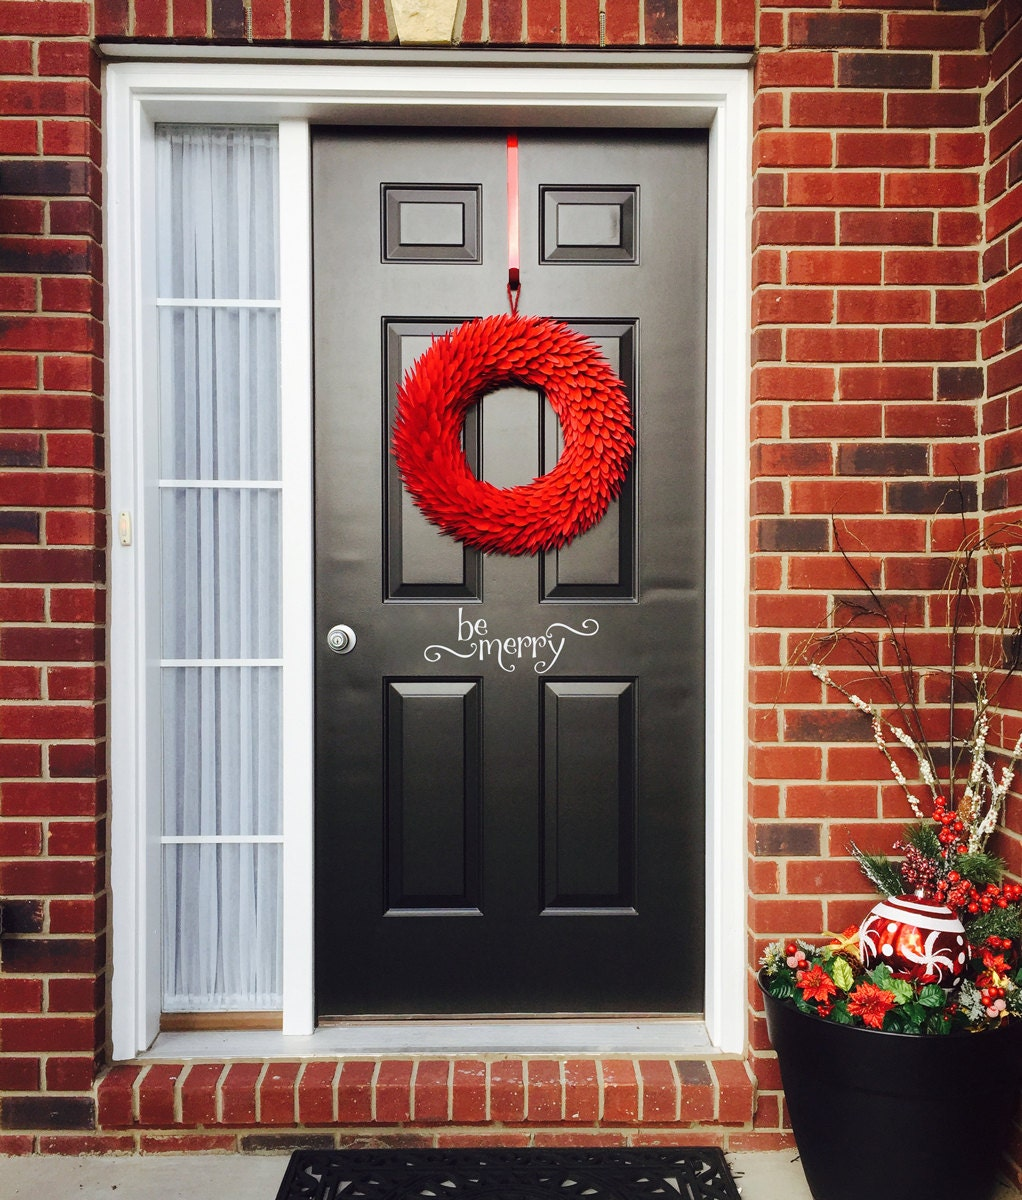 Be Merry Decal Front Door Decal Christmas Wall Decal